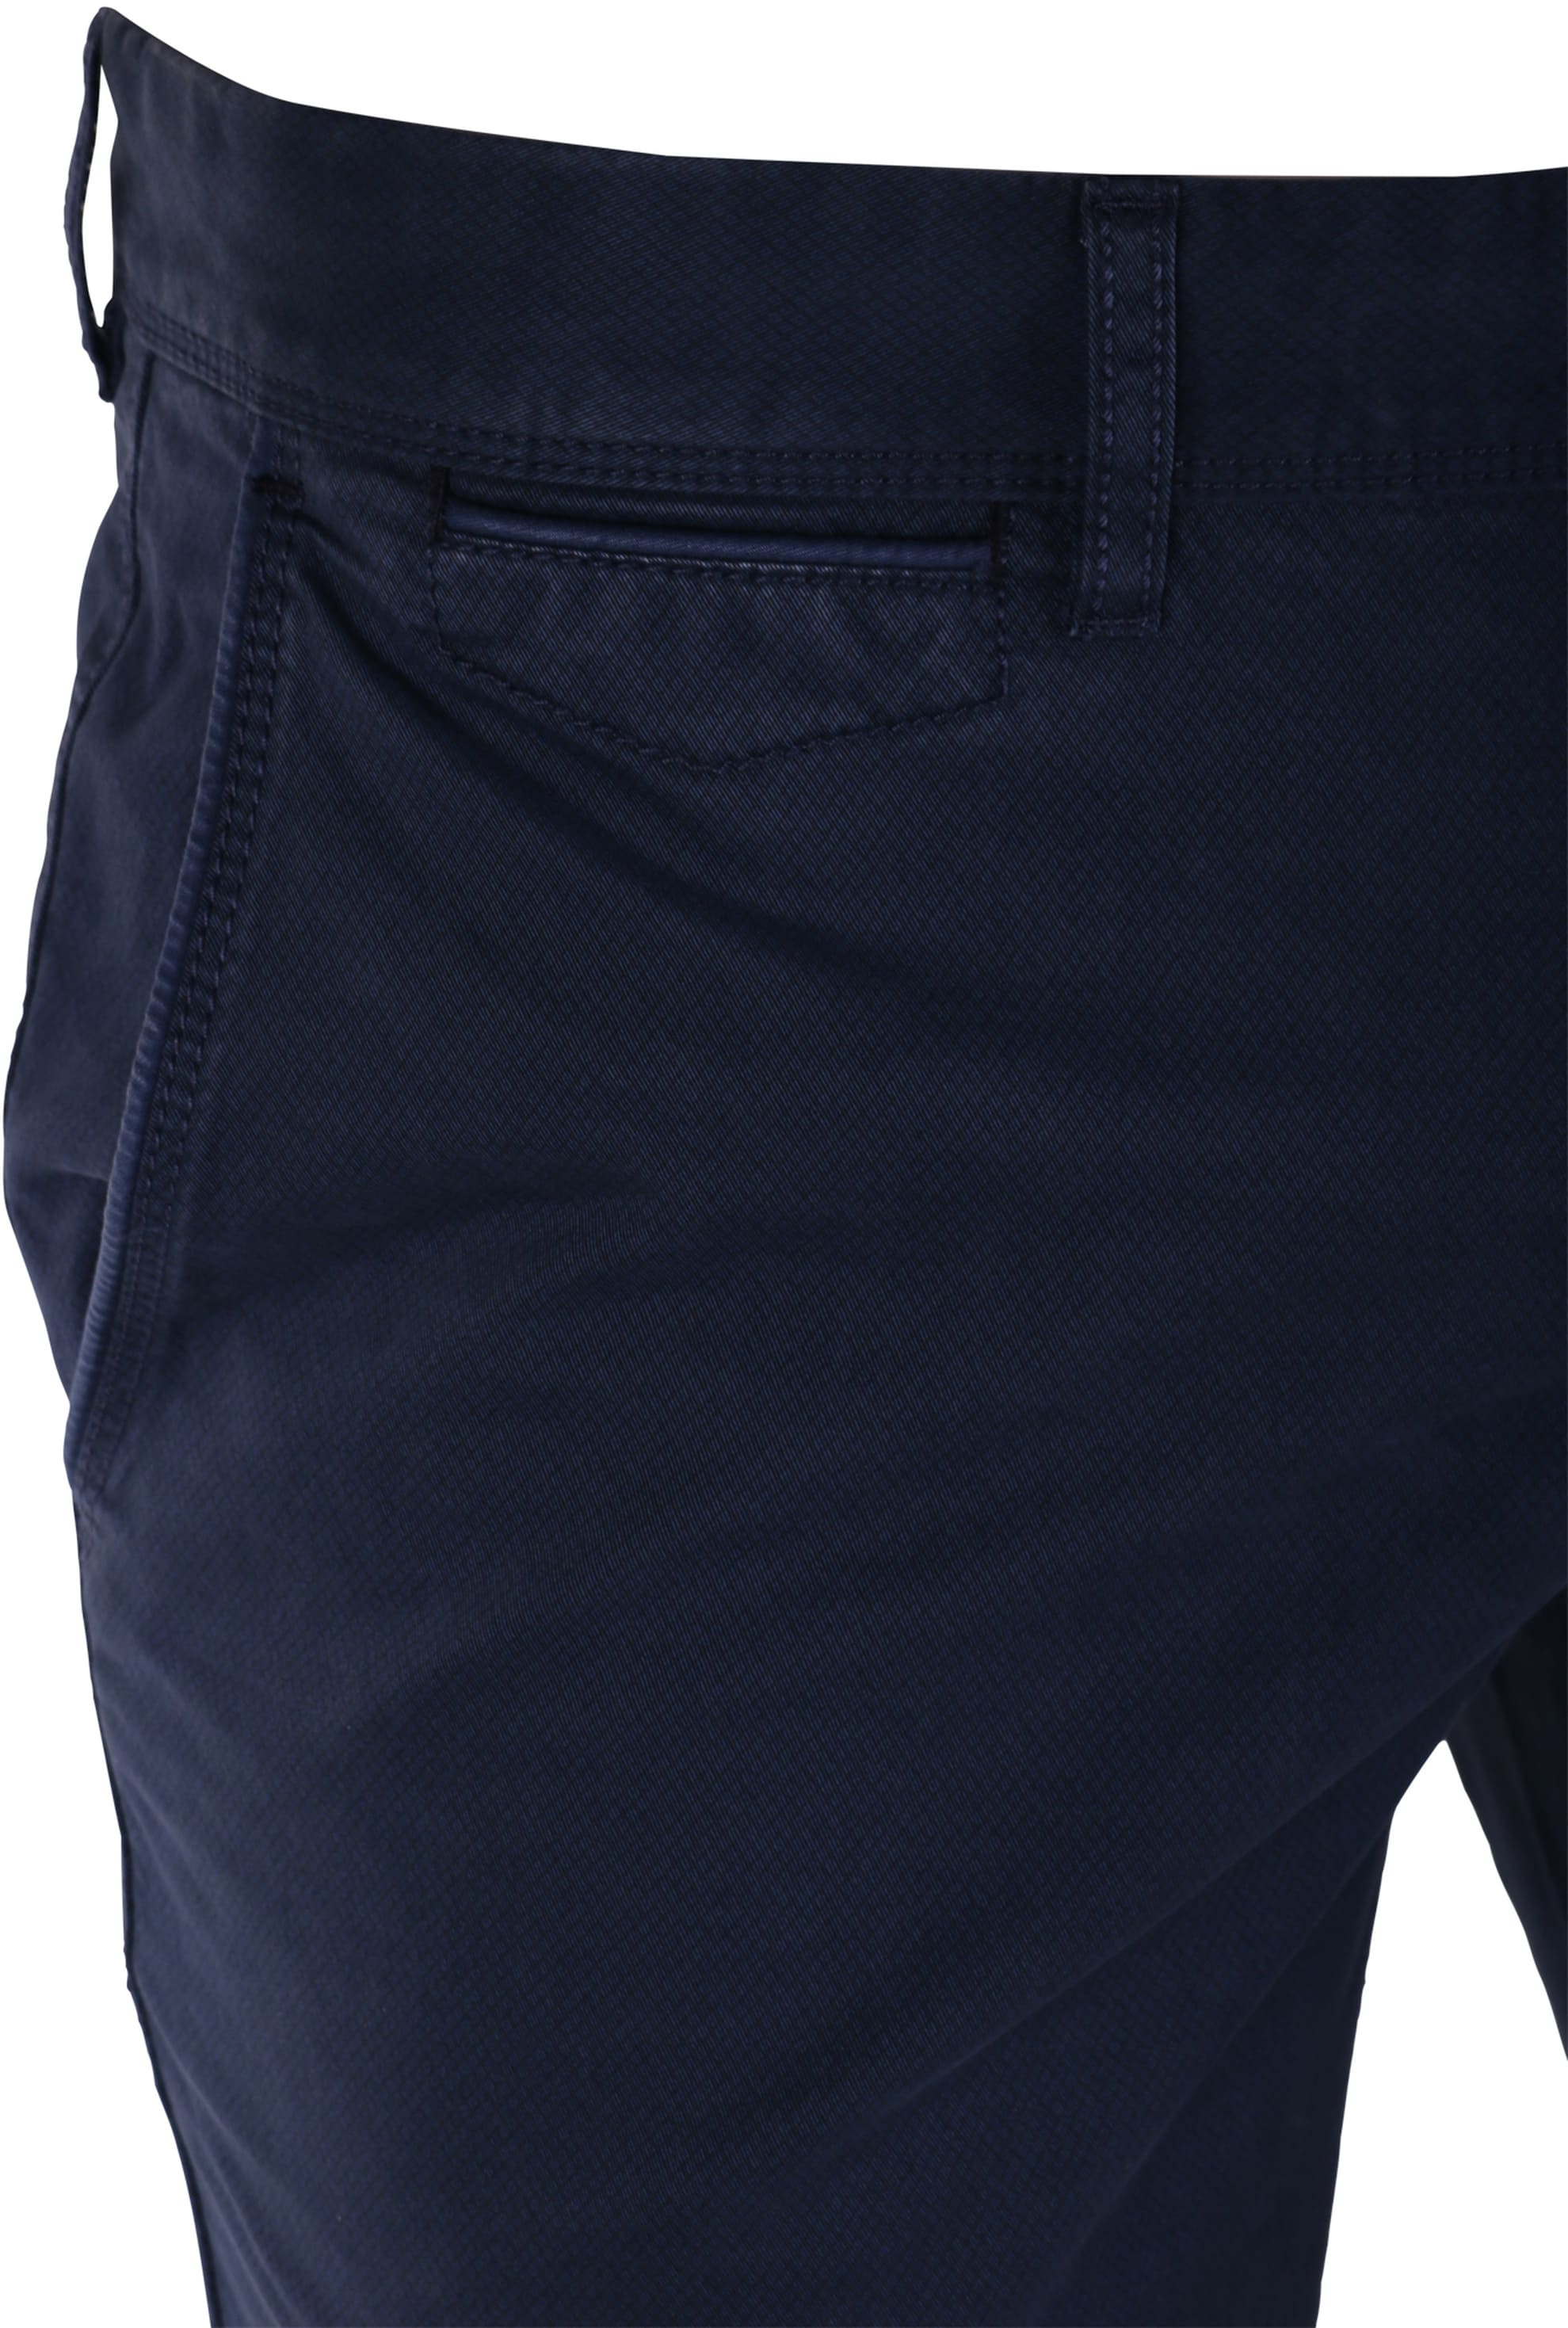 Suitable Chino Broek Donkerblauw Print foto 3